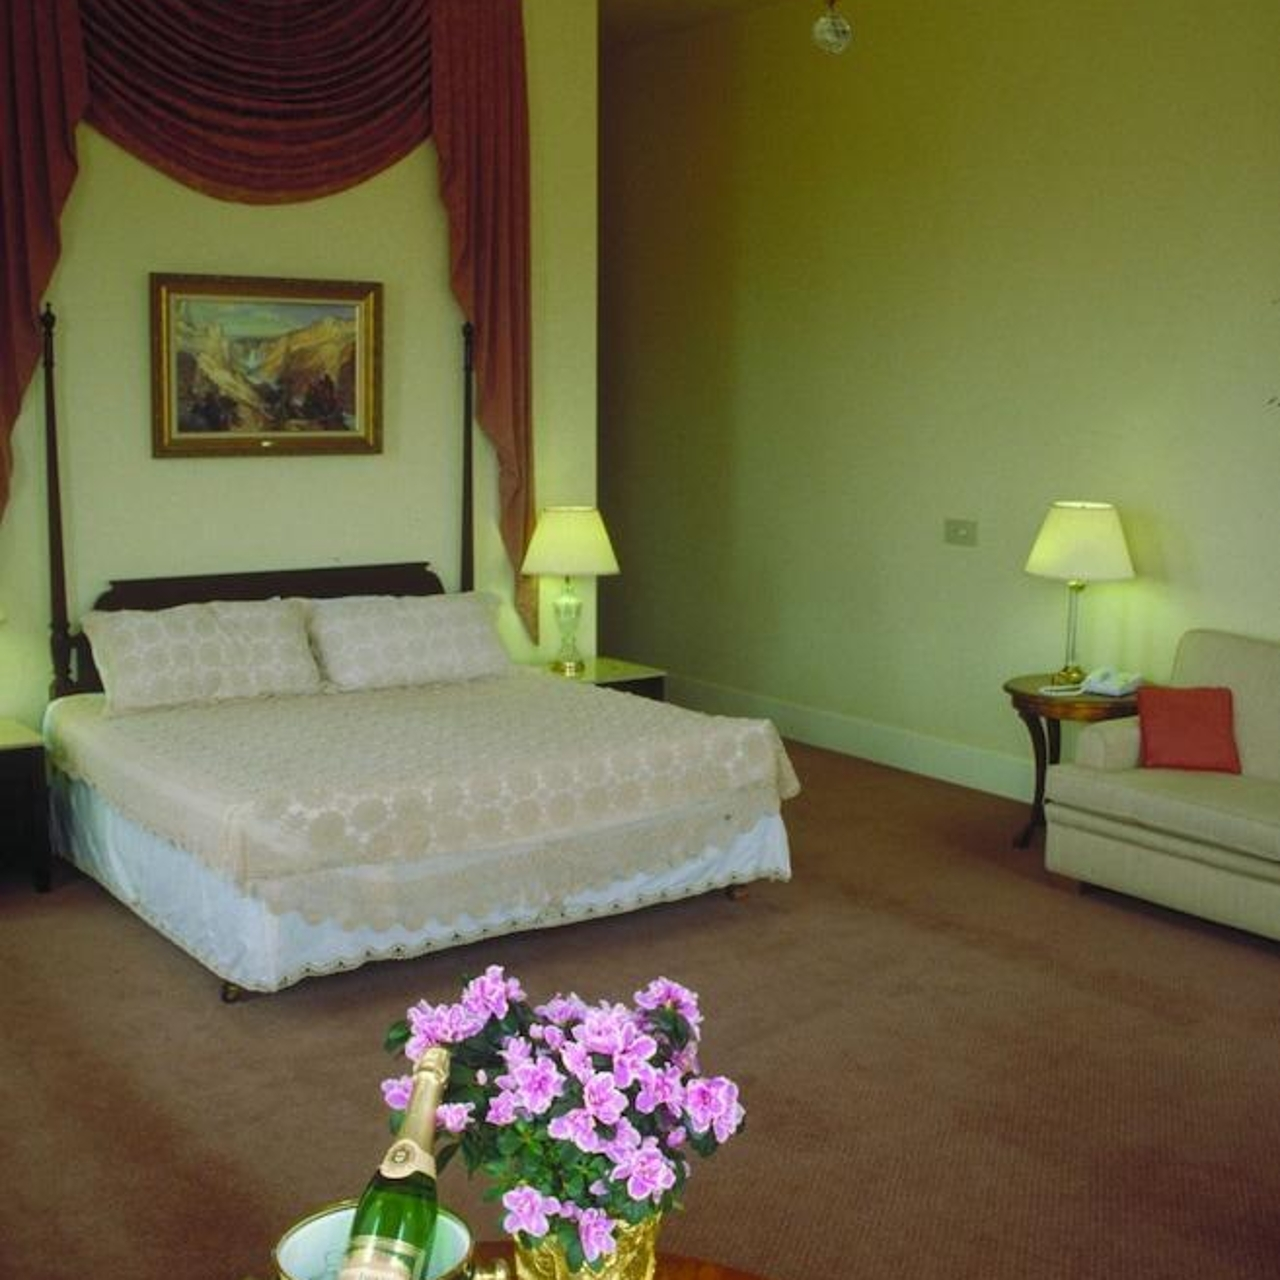 Geiser Grand Hotel United States Of America At Hrs With Free Services